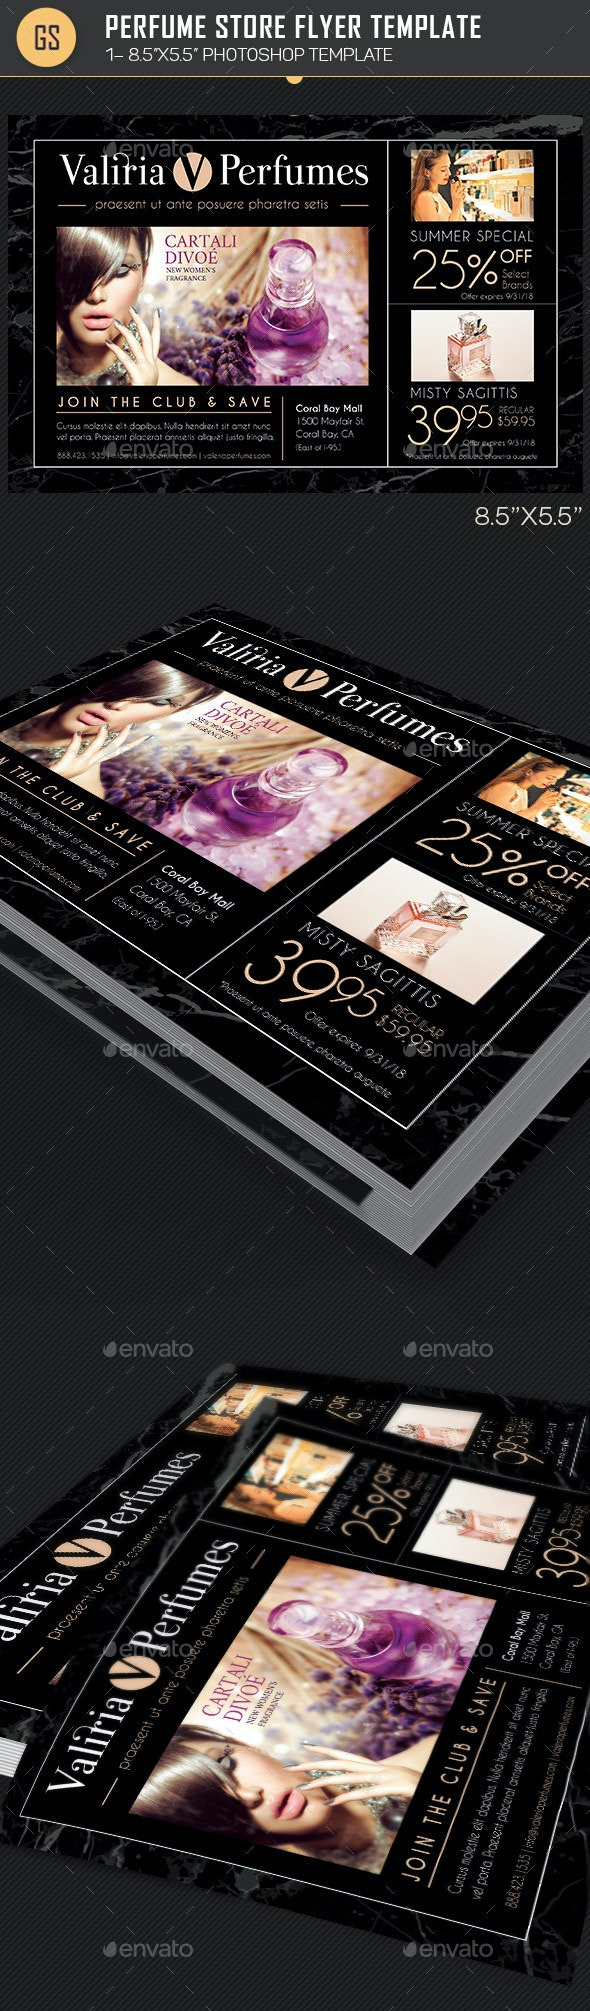 Perfume Store Flyer Template - Corporate Flyers